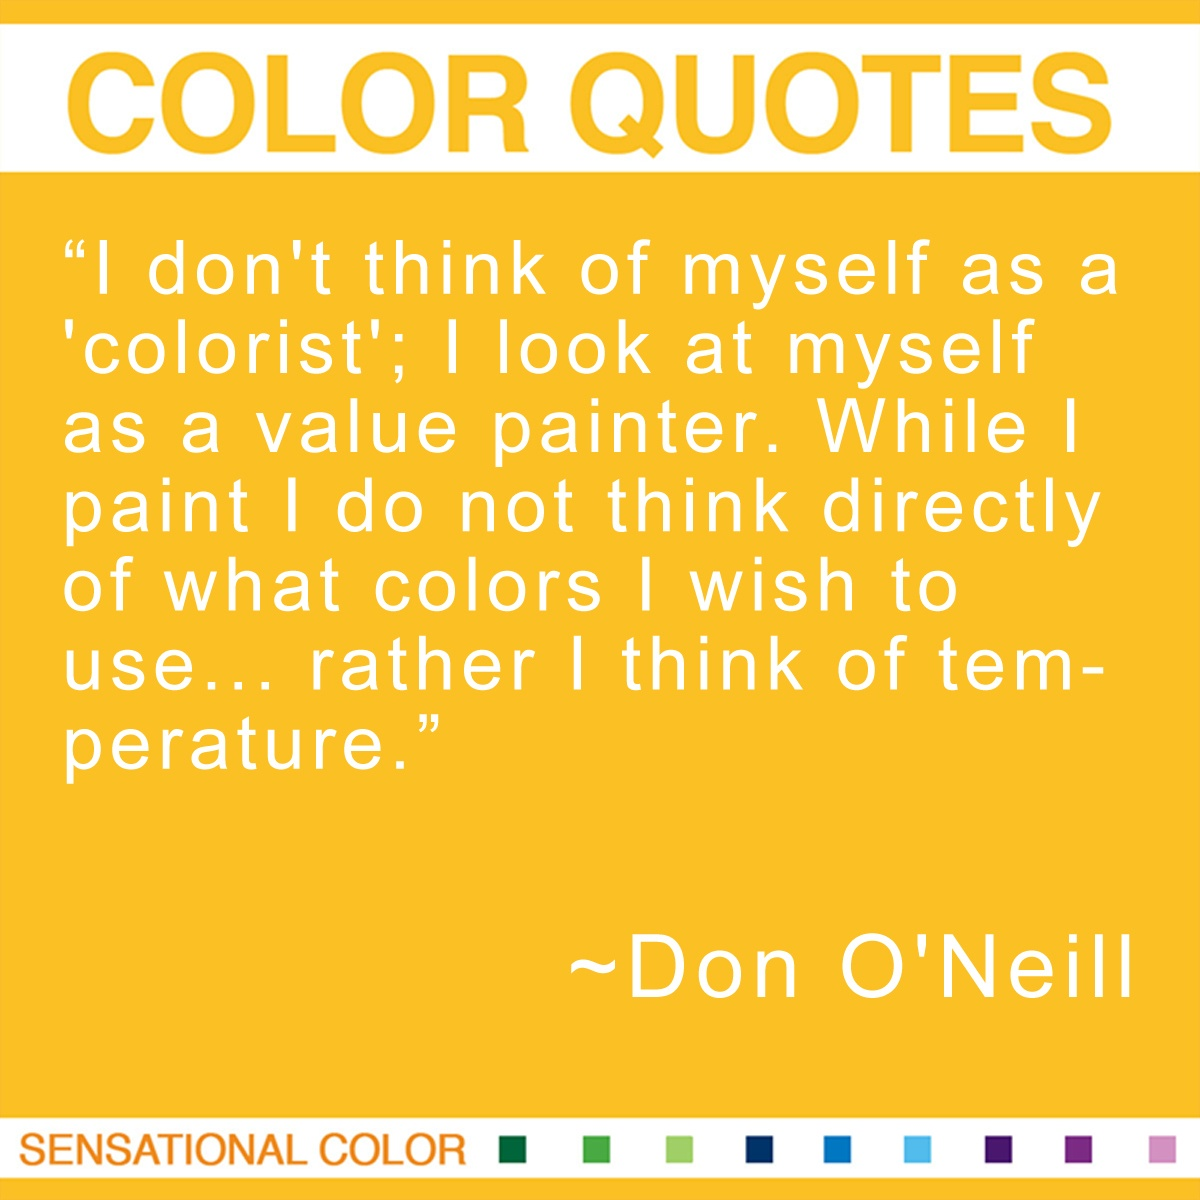 """I don't think of myself as a 'colorist'; I look at myself as a value painter. While I paint I do not think directly of what colors I wish to use… rather I think of temperature."" - Don O'Neill"